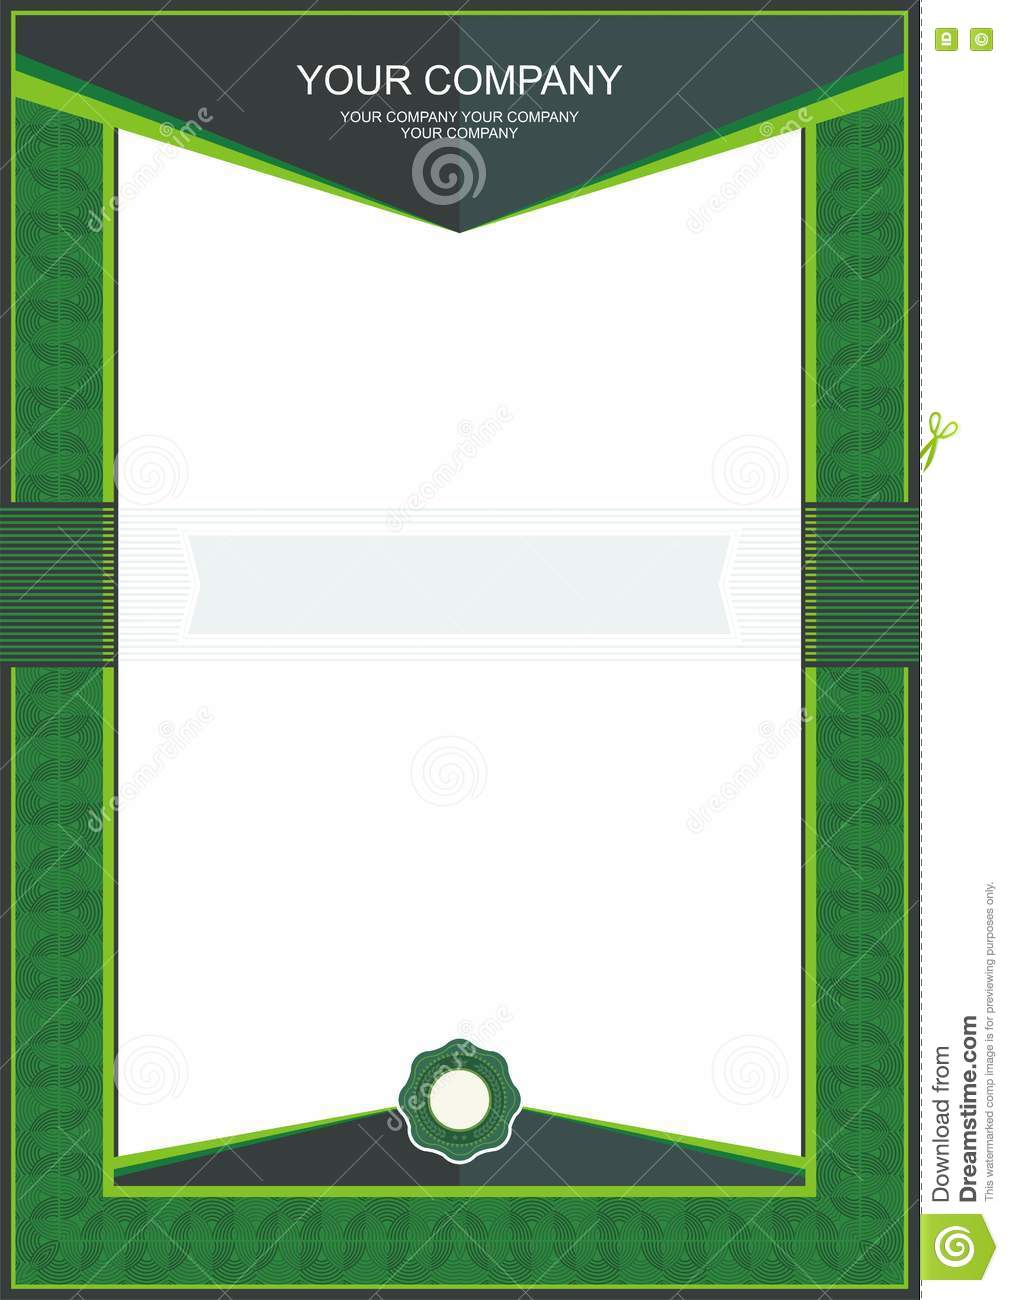 Green certificate or diploma template frame border stock vector green certificate or diploma template frame border maxwellsz